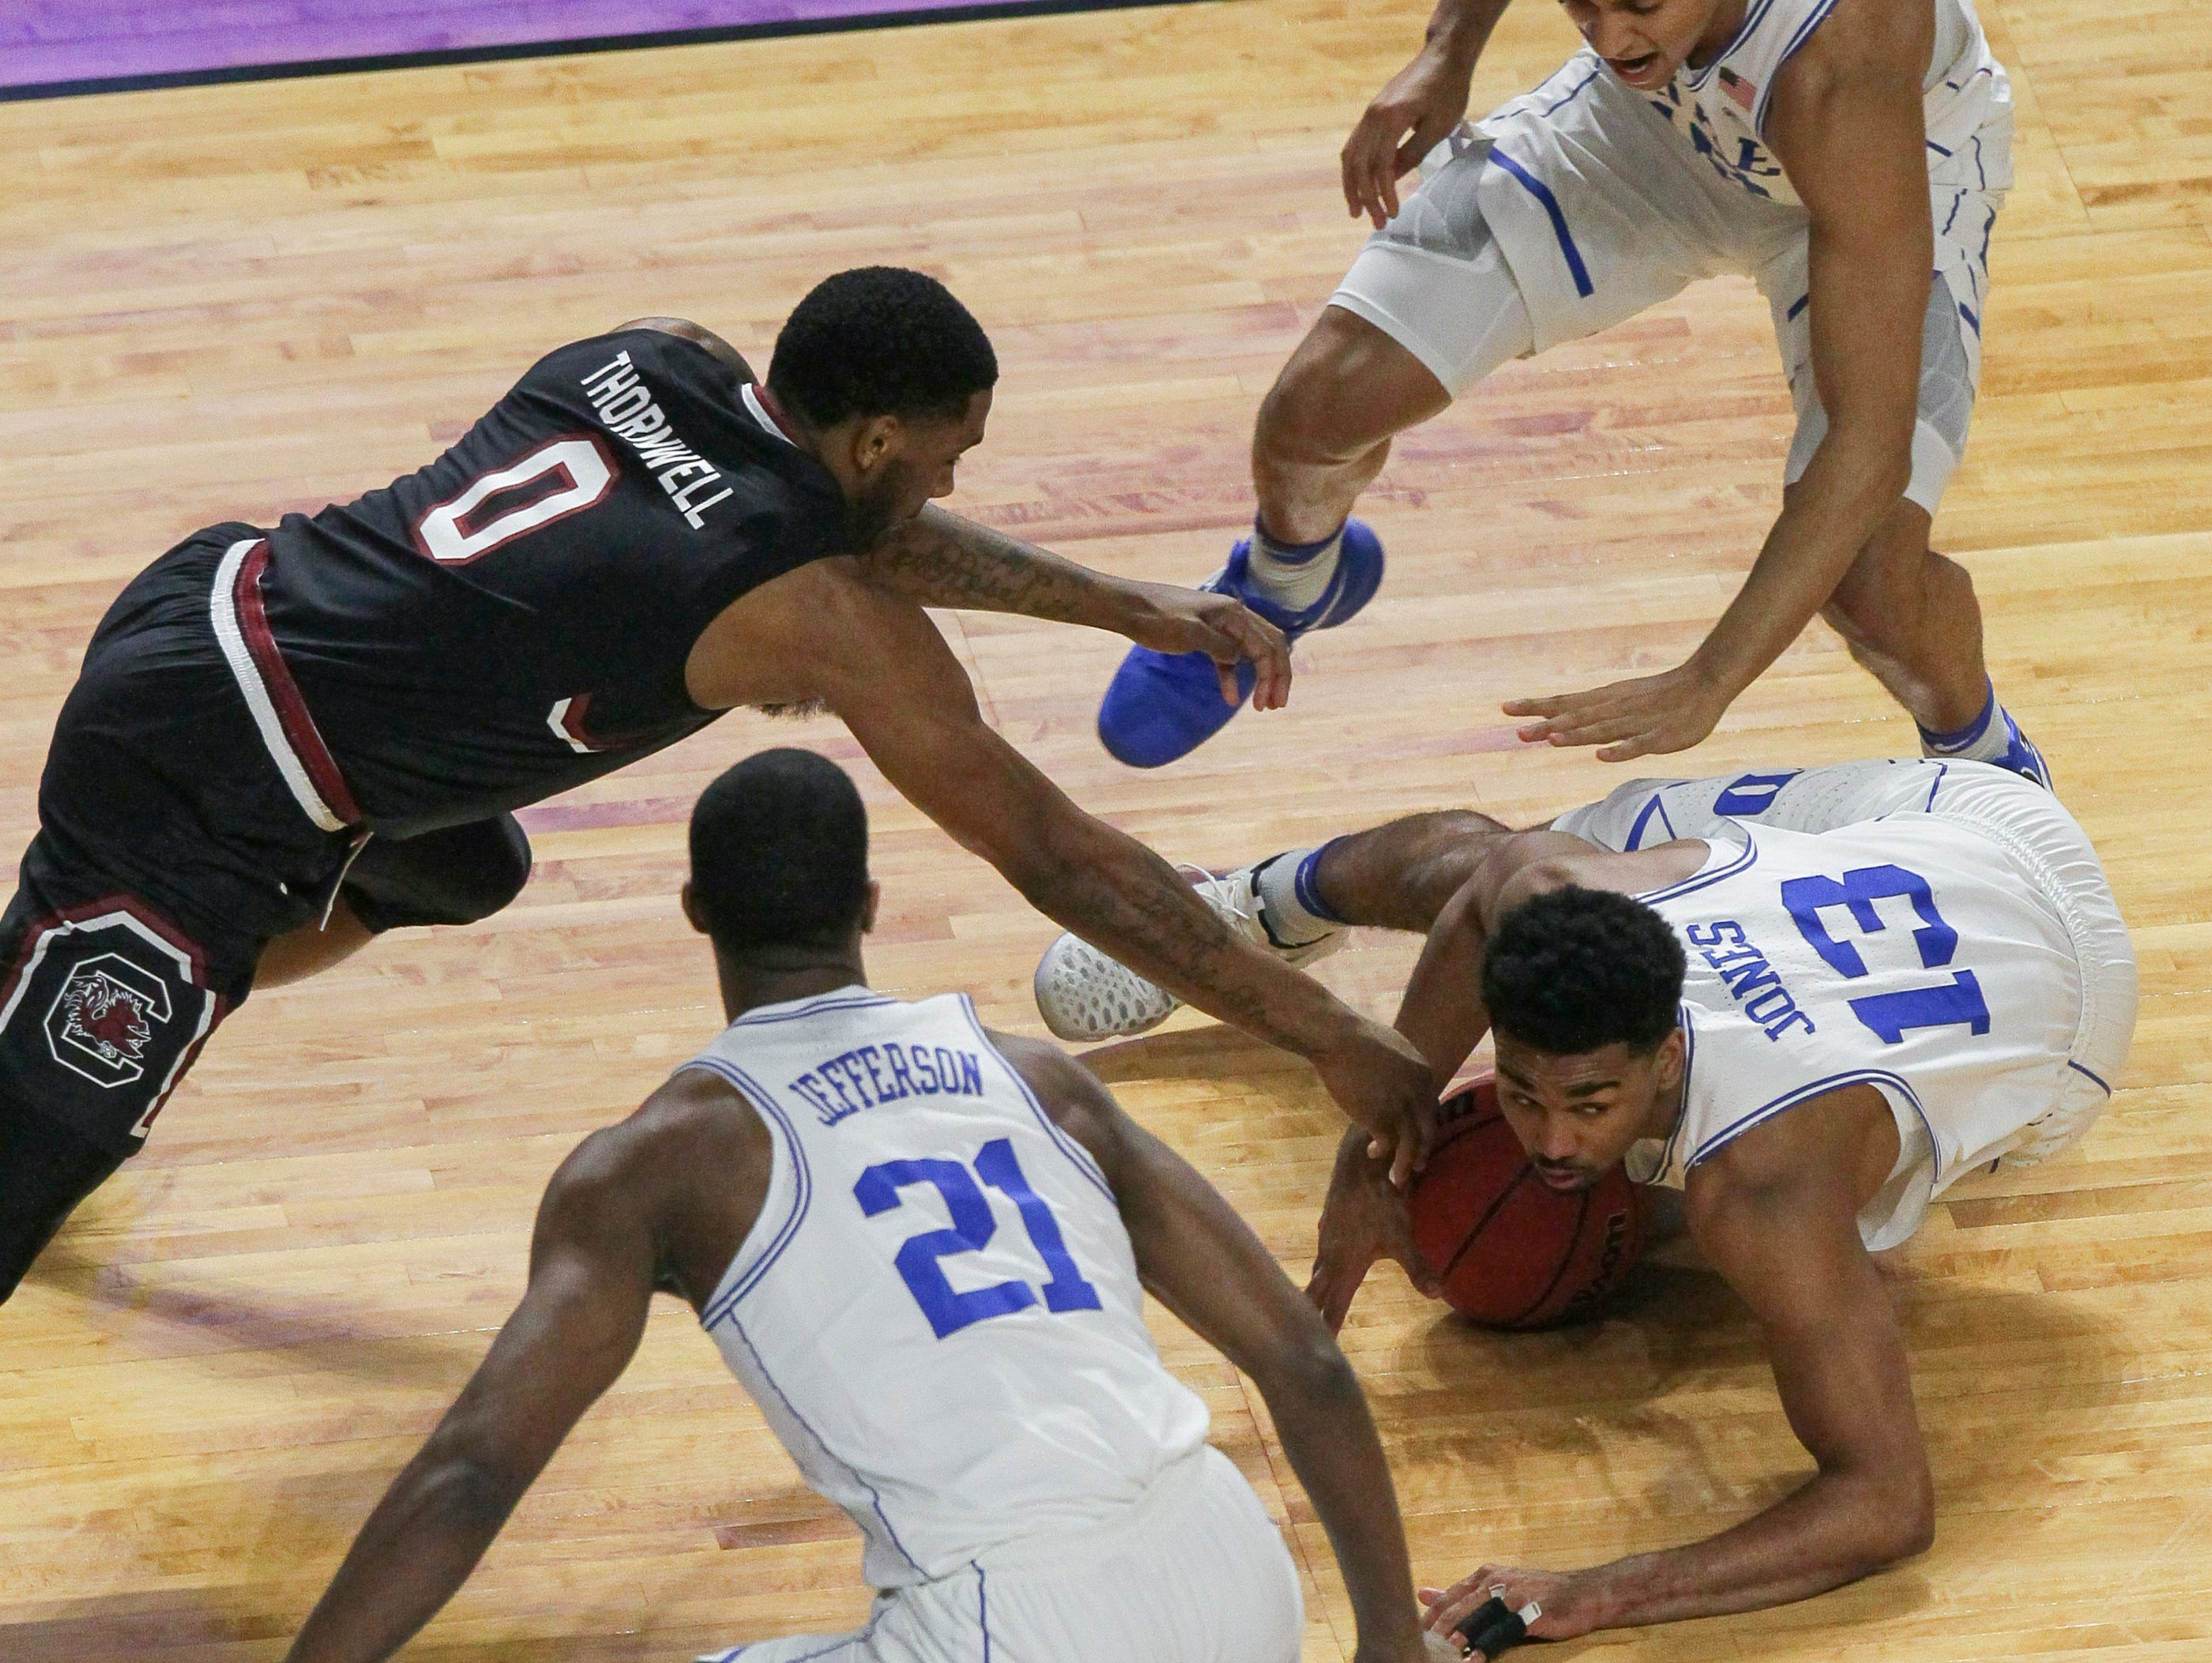 South Carolina guard Sindarius Thornwell (0) reaches in for a loose ball with Duke guard Matt Jones (13) in the first half during the 2nd round of the NCAA Tournament at Bon Secours Wellness Arena in downtown Greenville on Sunday, March 19, 2017.